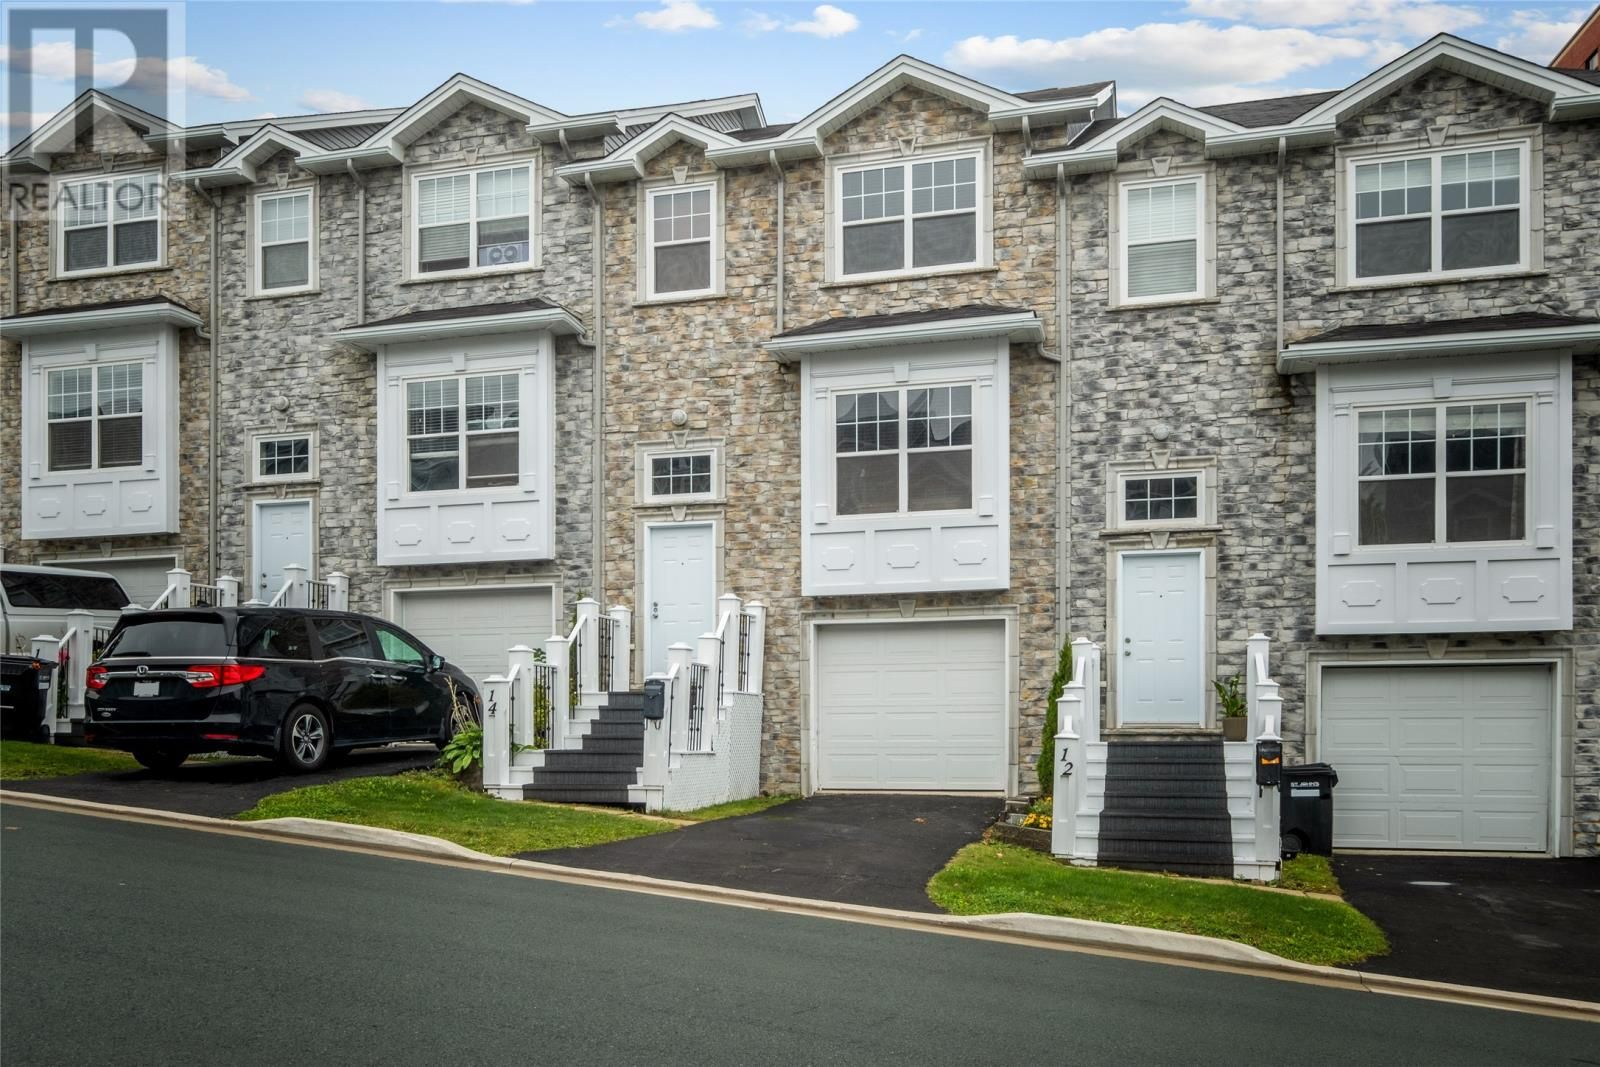 Main Photo: 14 King Edward Place in St. Johns: Condo for sale : MLS®# 1236872